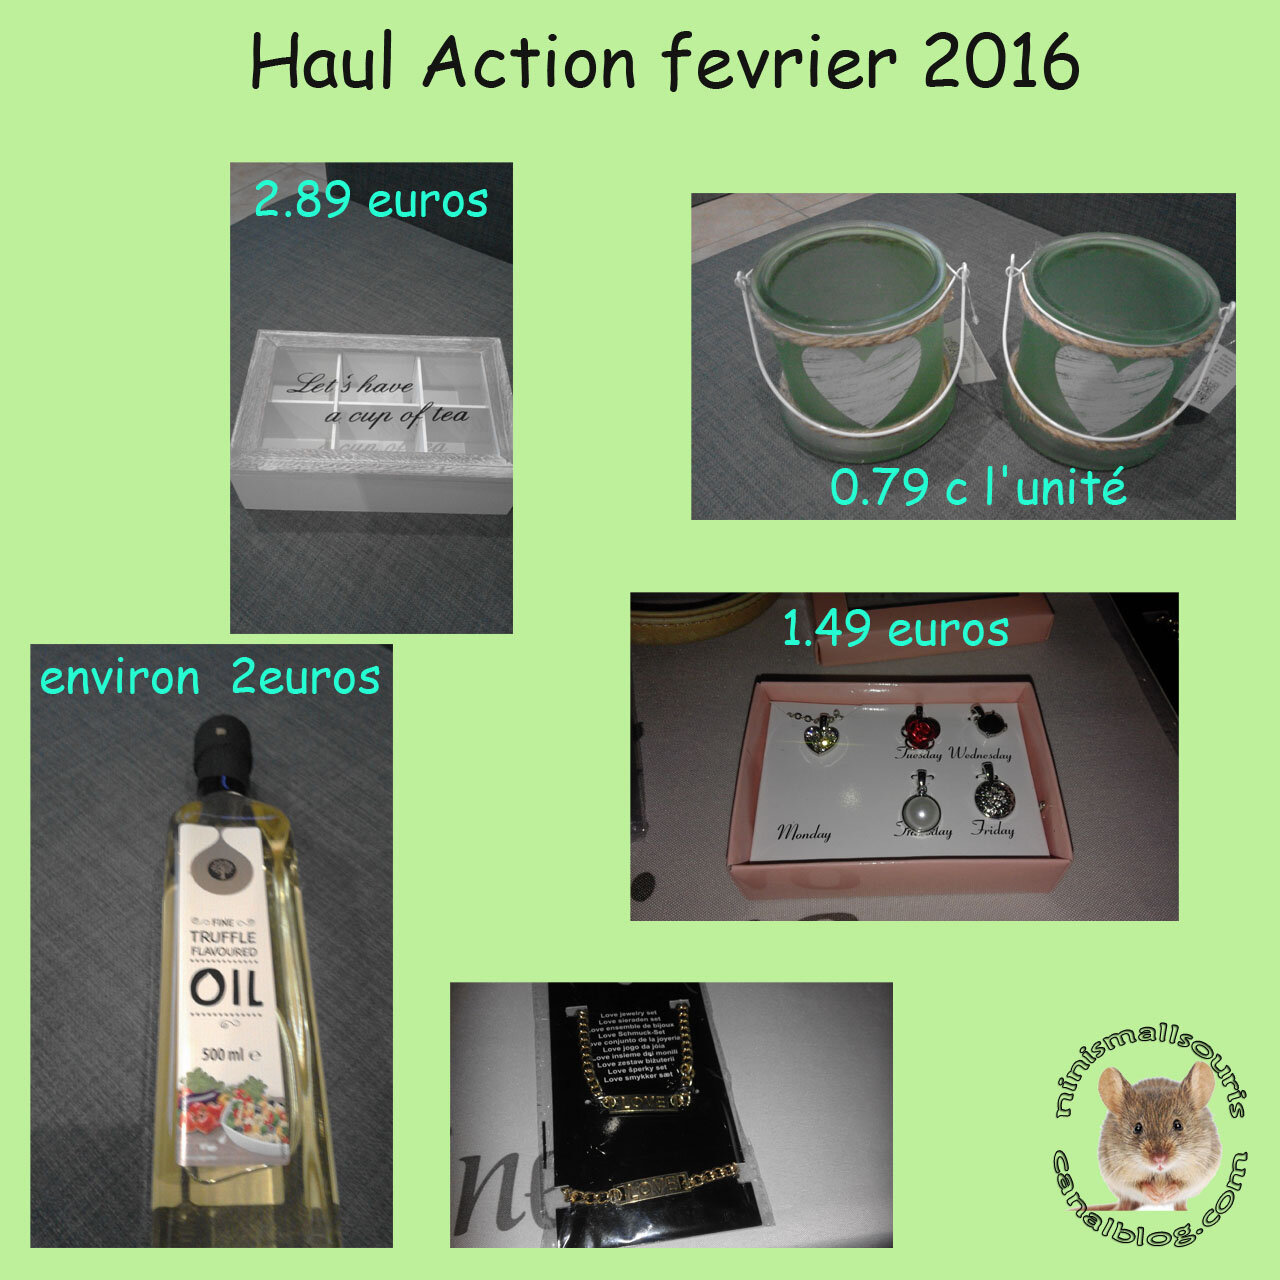 Haul action fevrier 2016